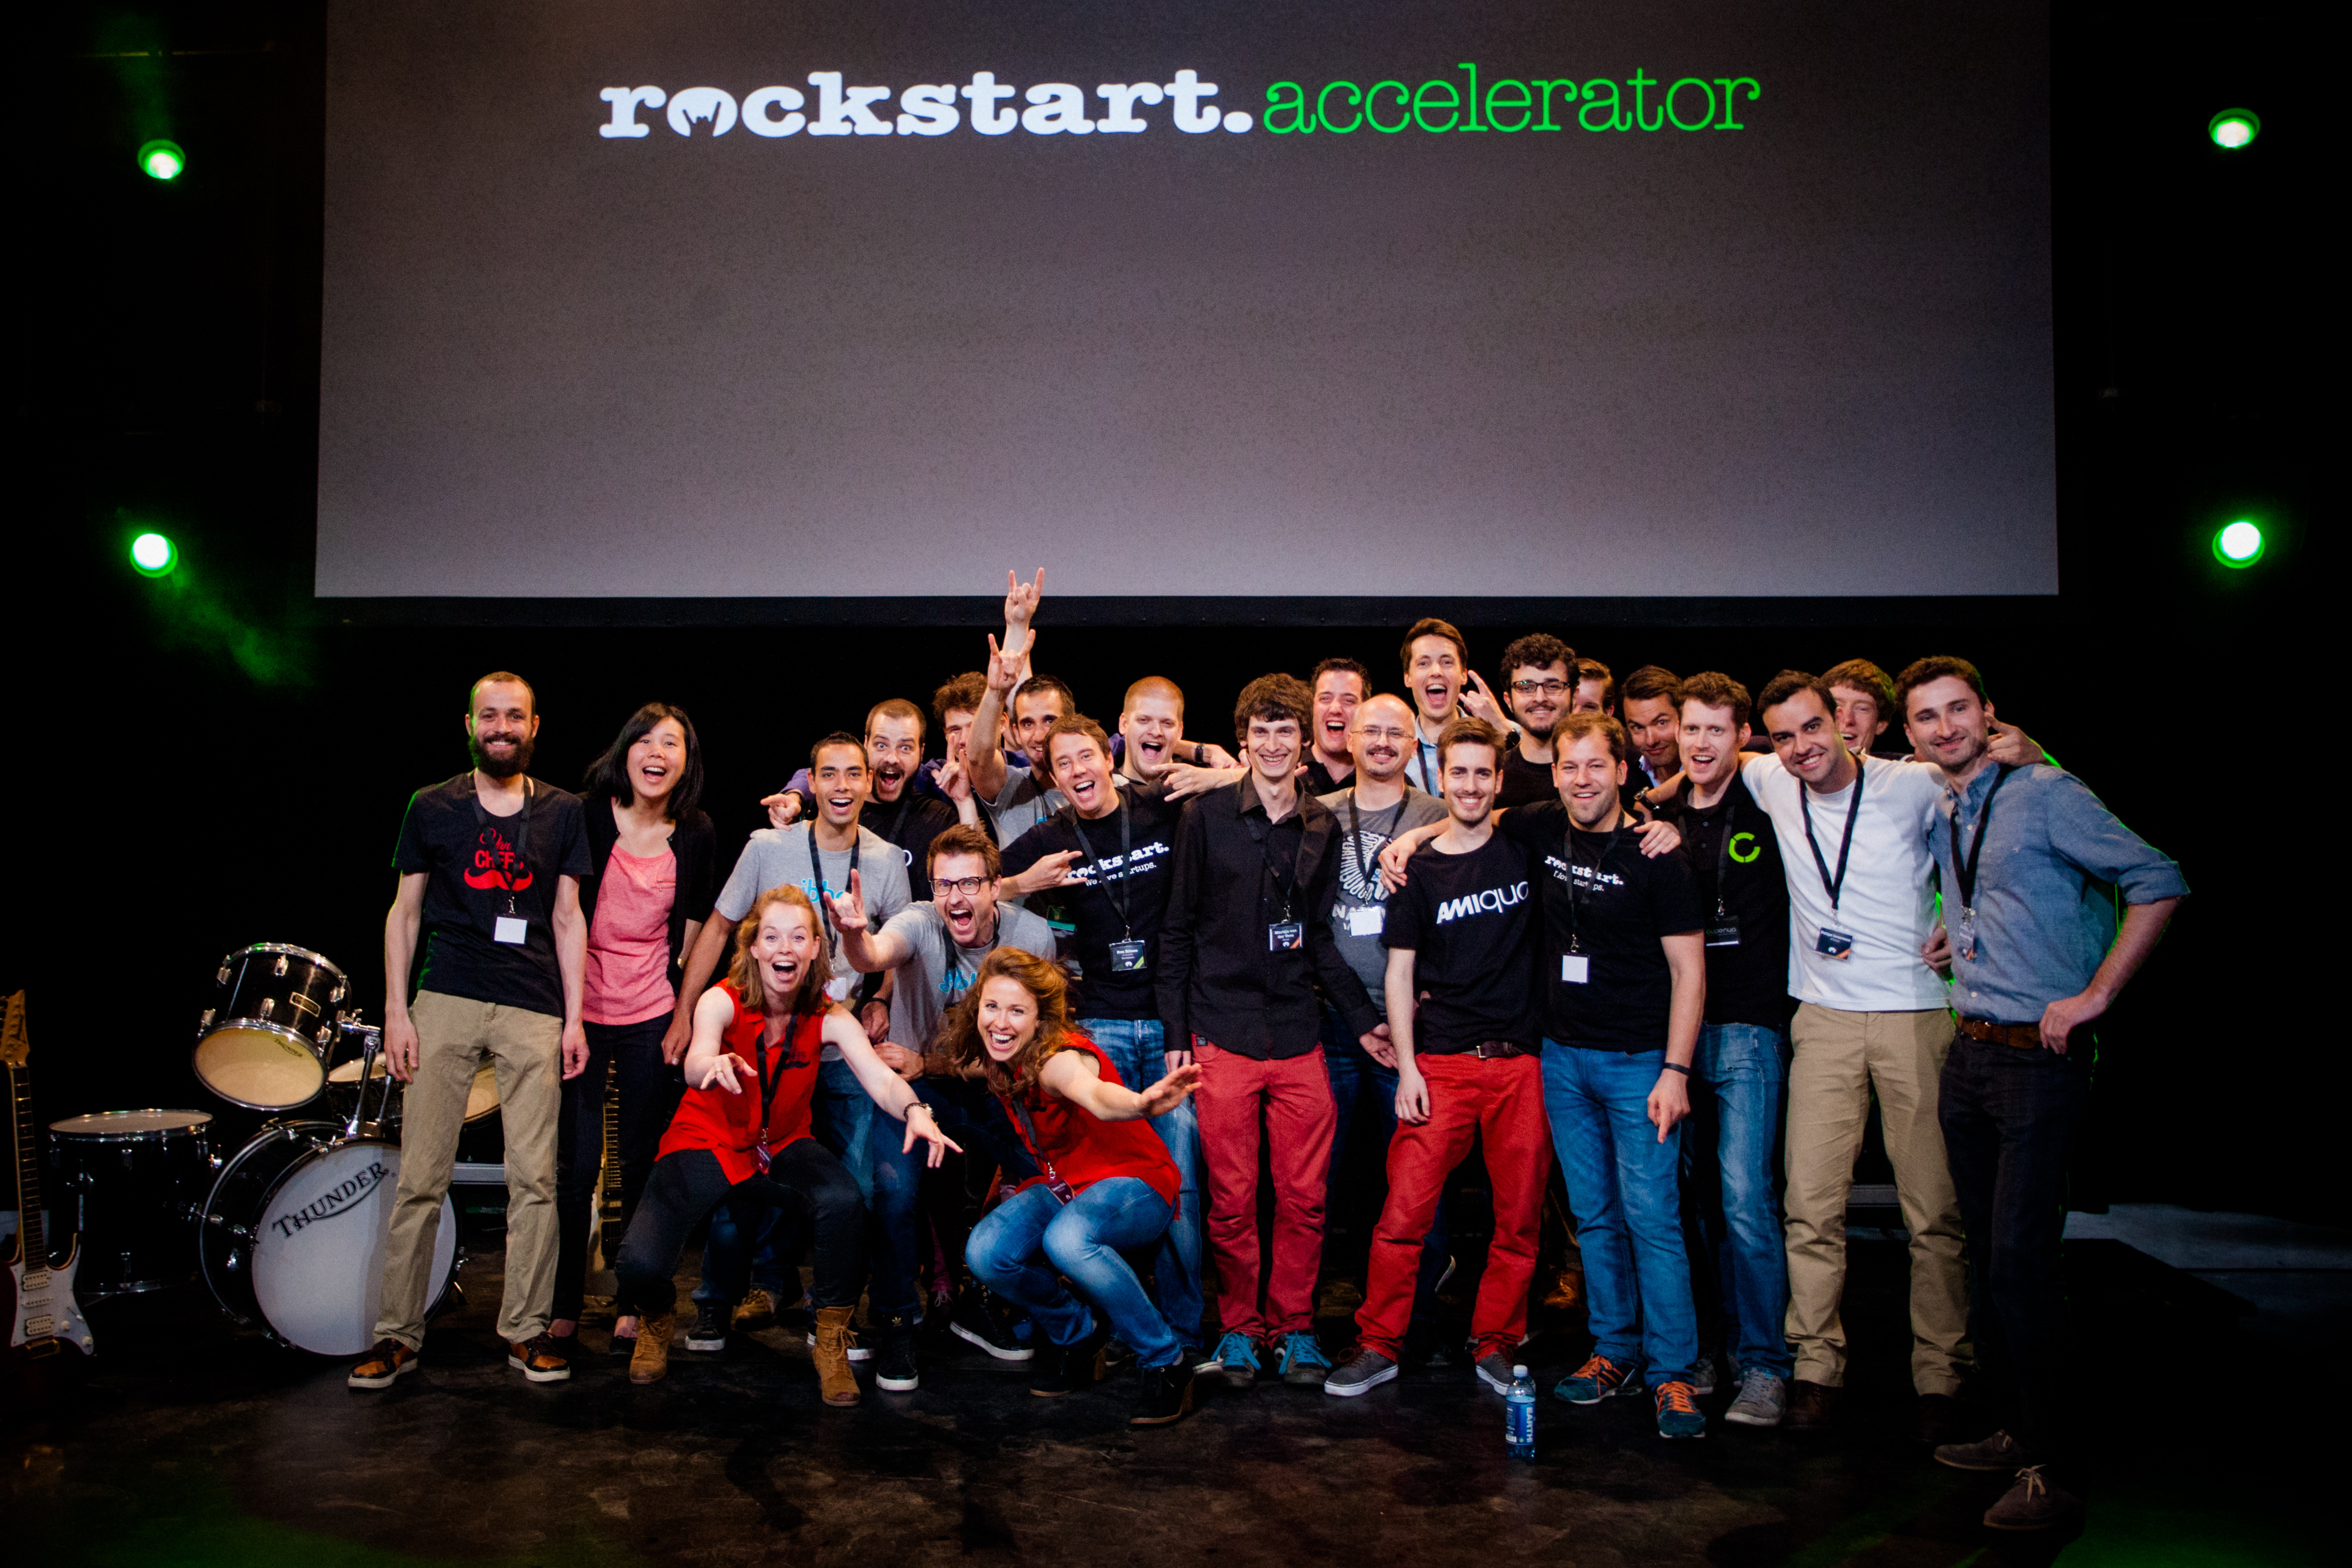 Rockstart, an accelerator that has become a center of Amsterdam's startup scene, hosts its demo day.